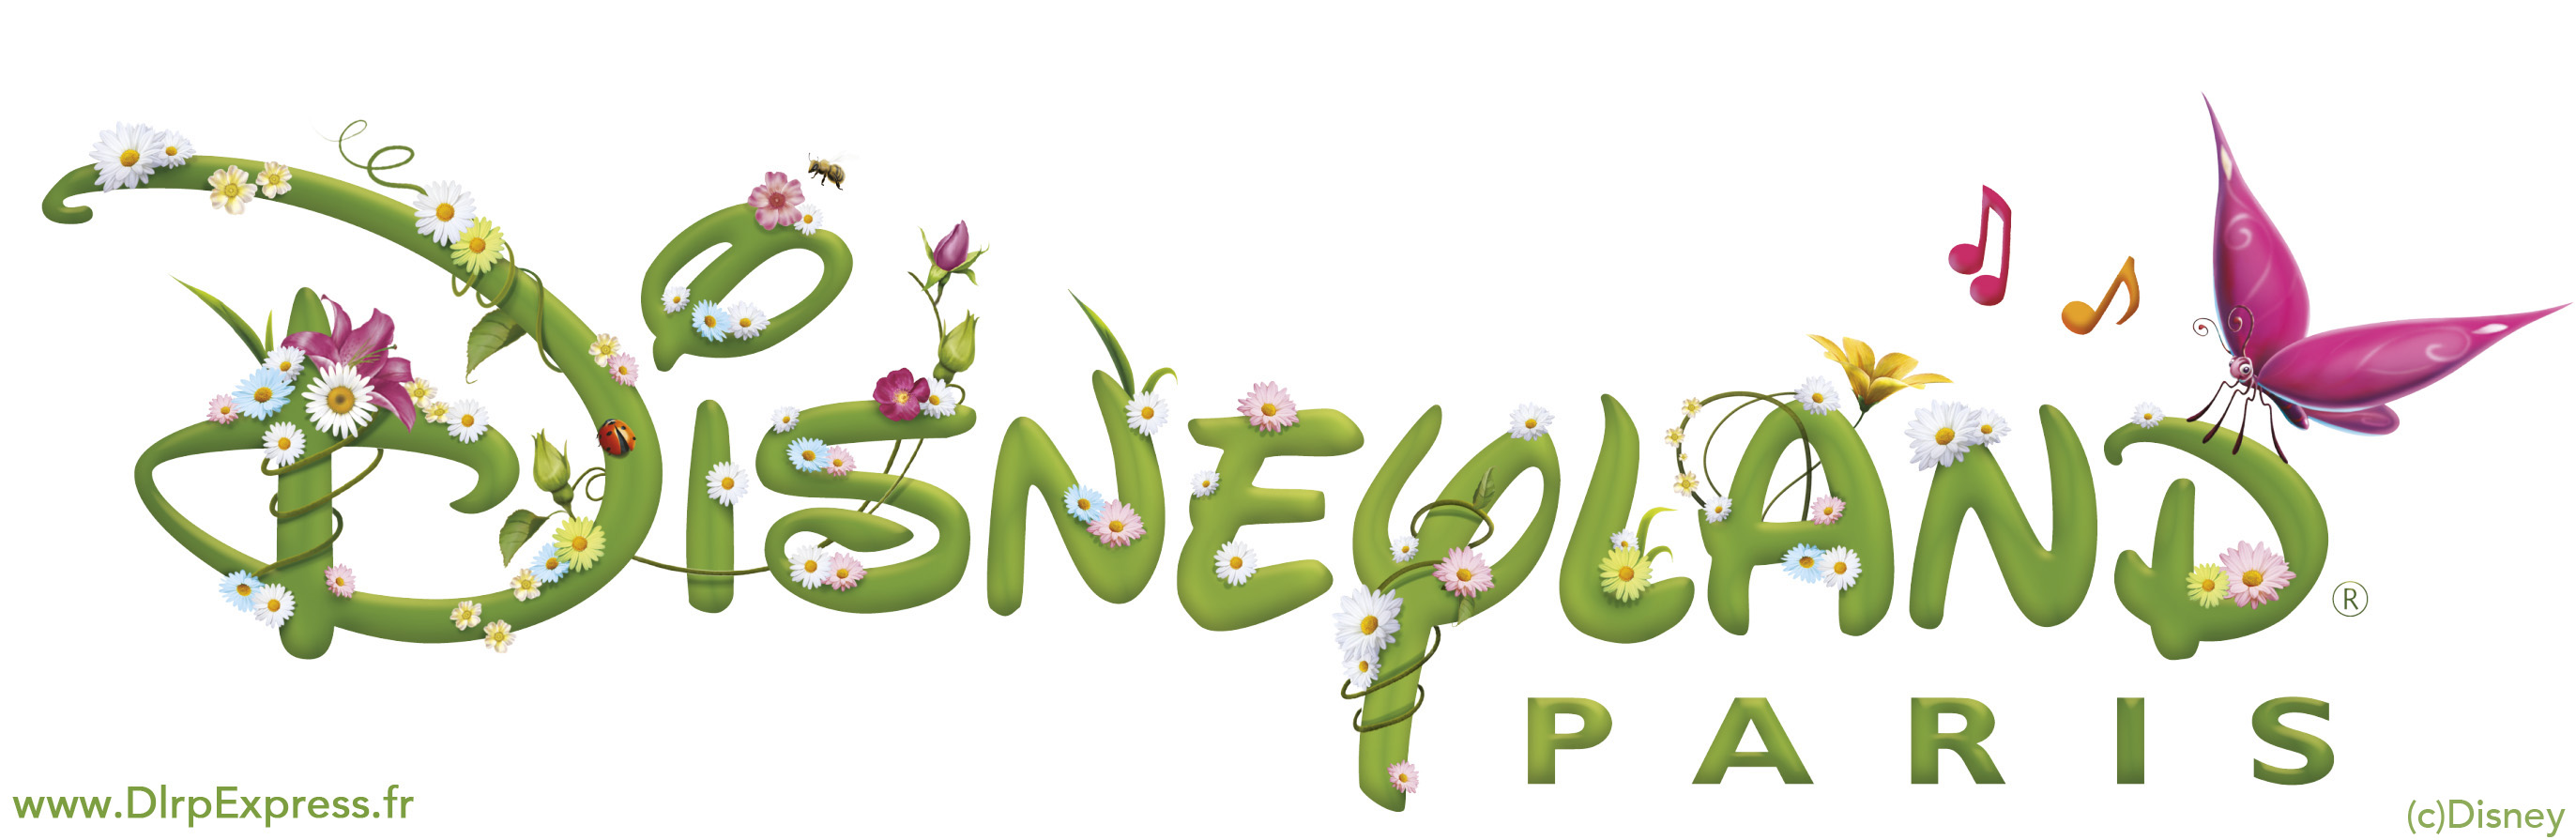 Disneyland Paris logo with flowers and butterflies.